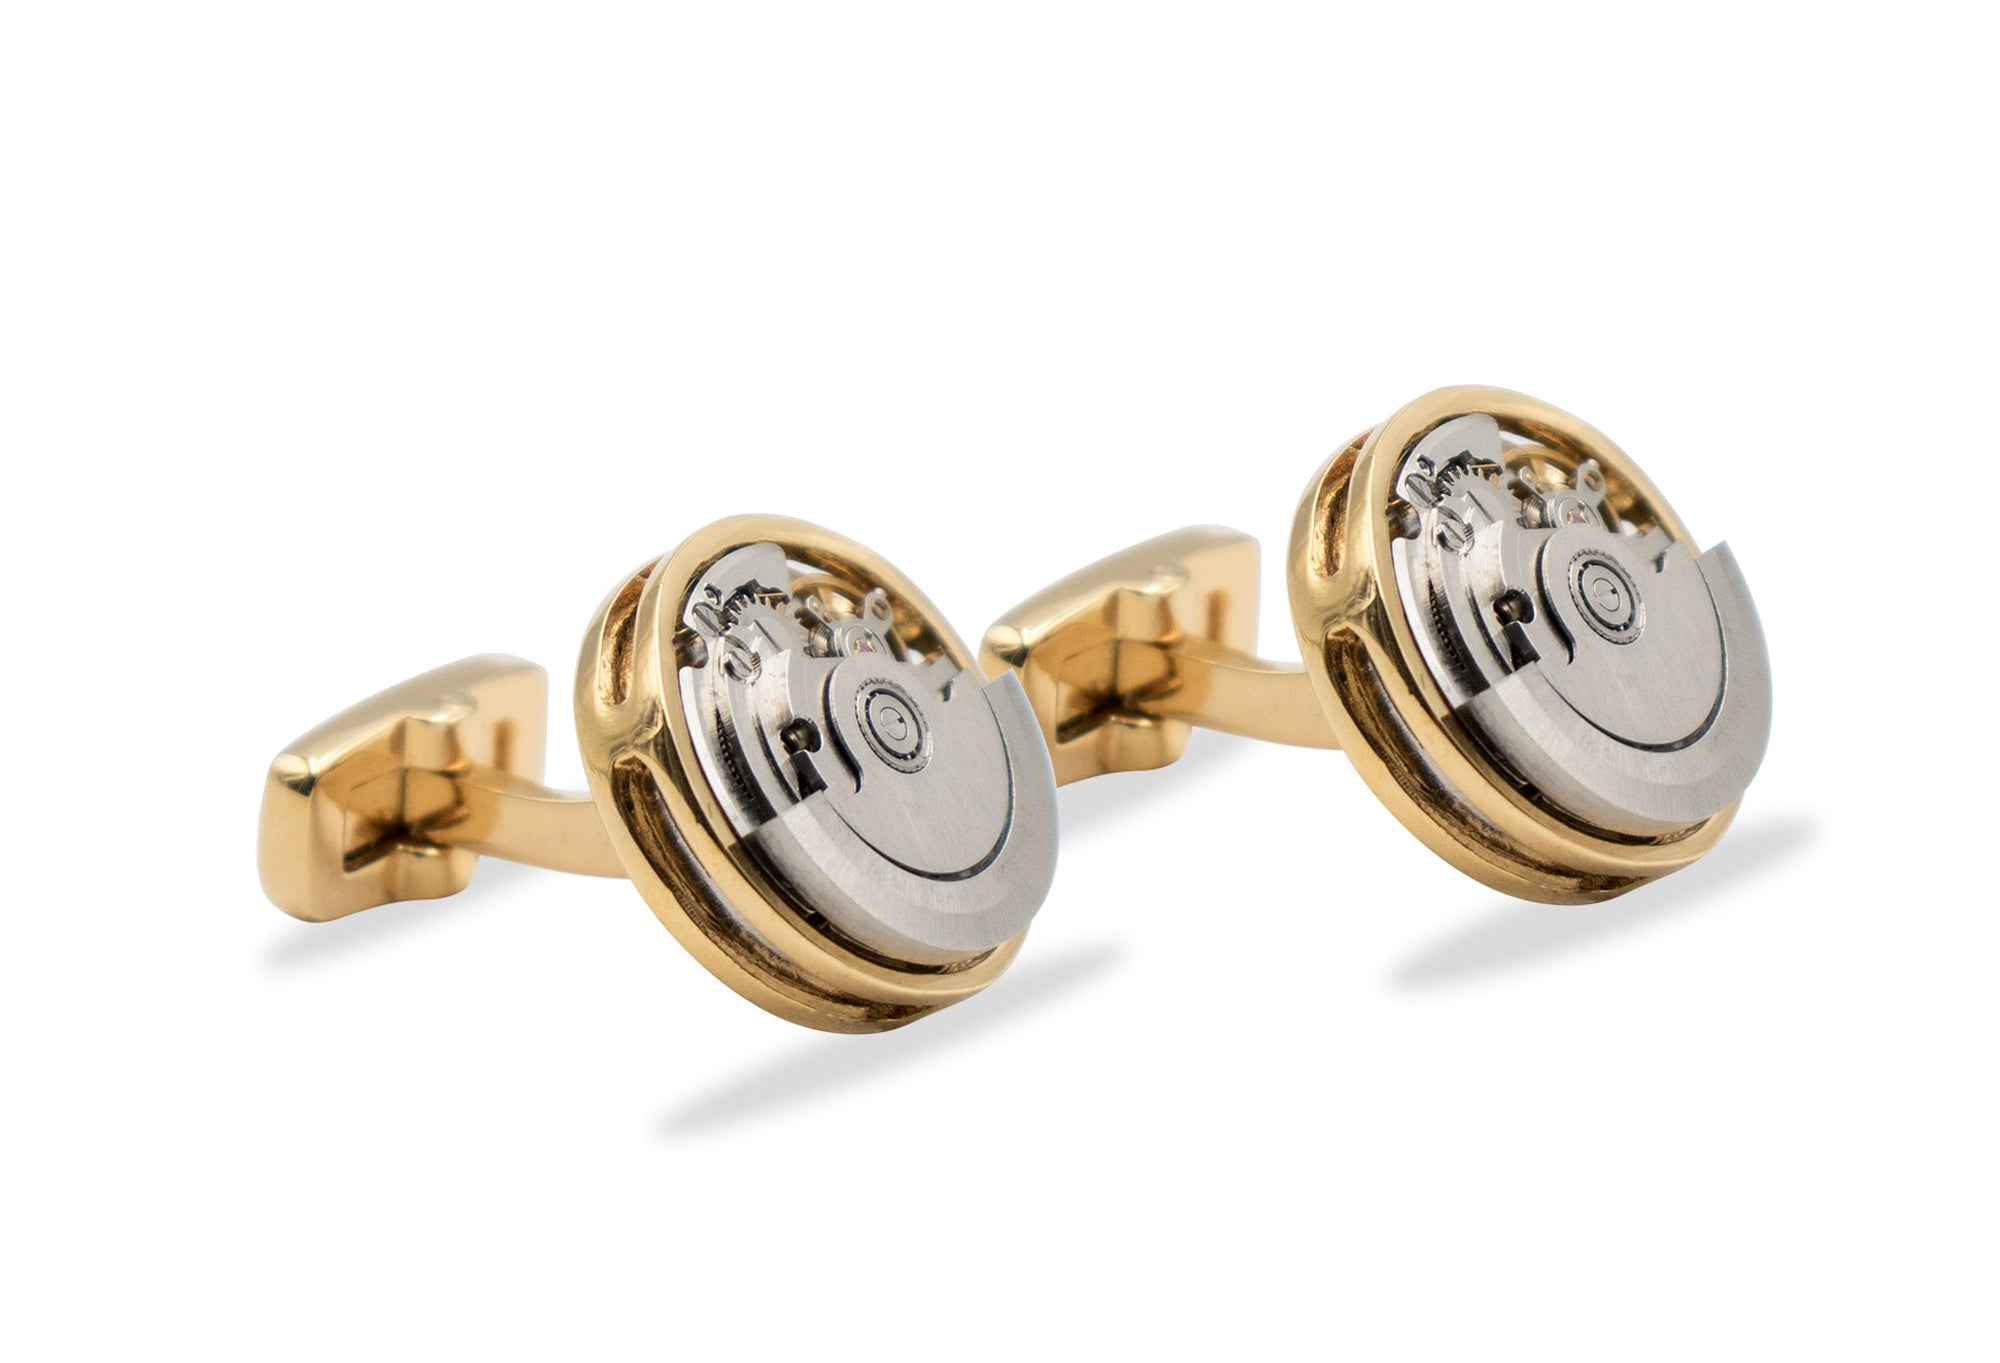 Guatire Watch Movement Cufflinks